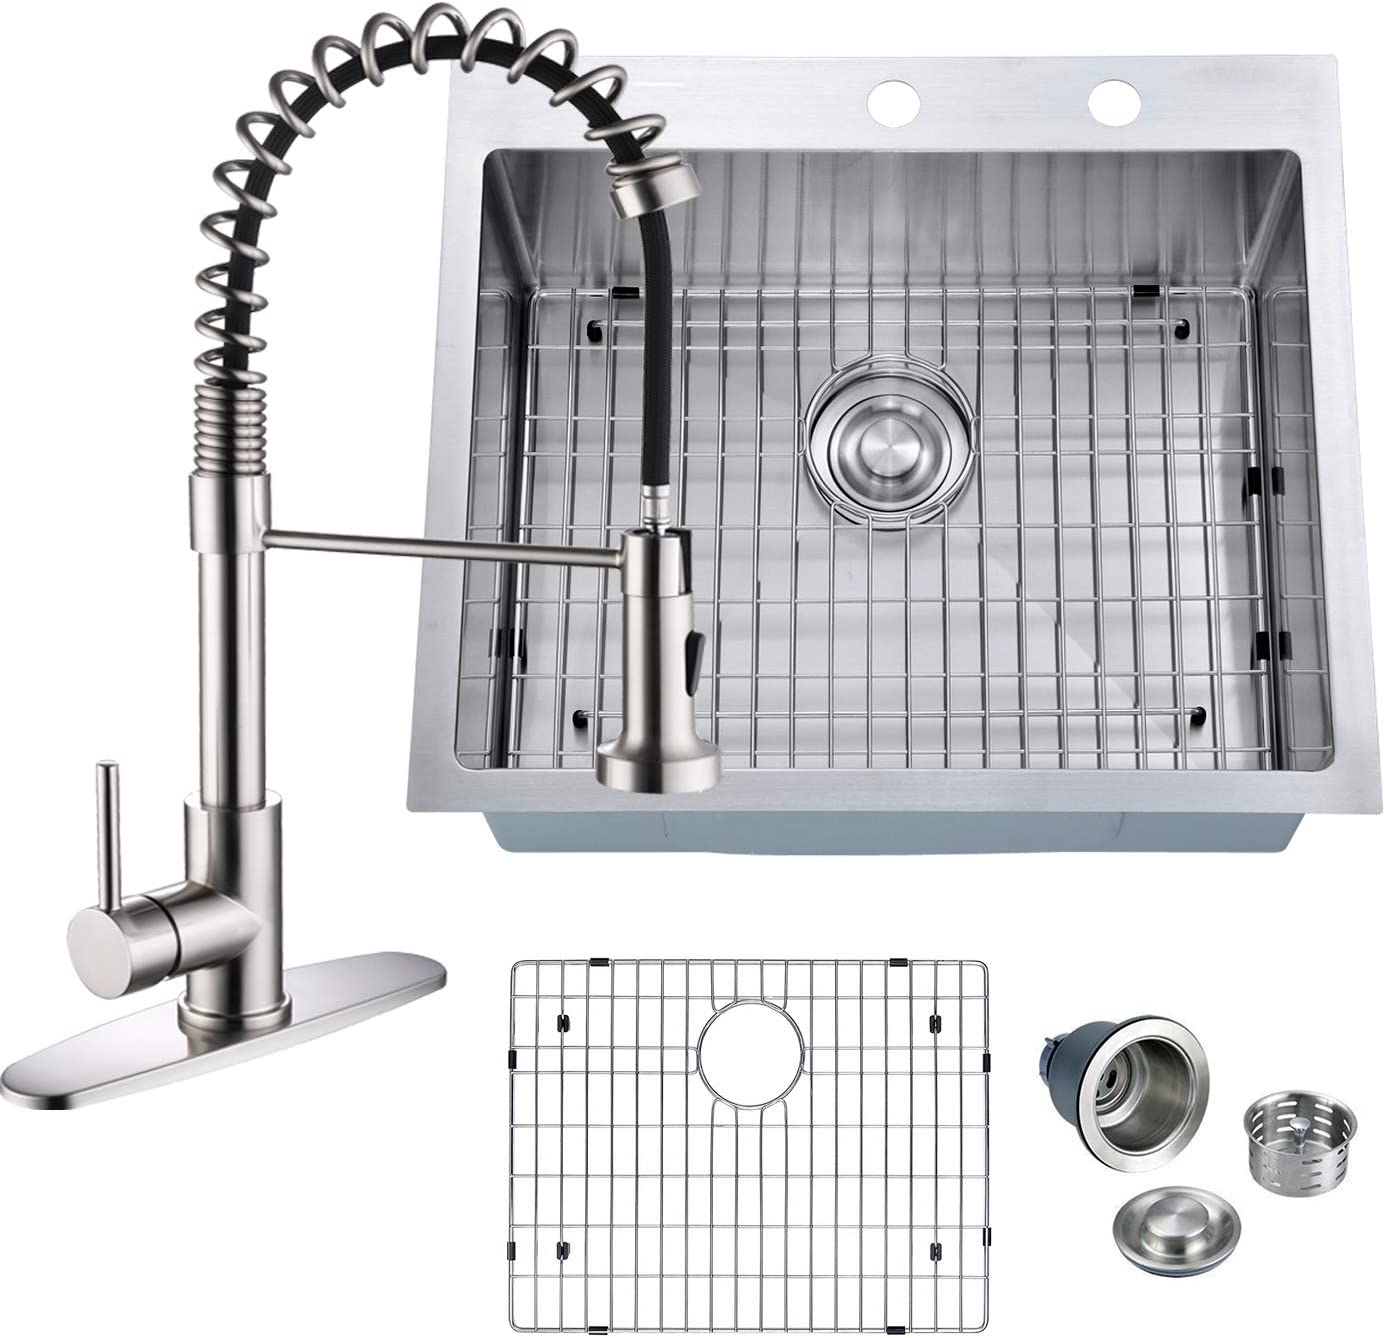 PRIMART 25 x 22 Inch Handmade Topmount 16 Gauge Stainless Steel Single Bowl Kitchen Sinks Drop-in With 2 Faucet Hole,Bottom Grid,Drainer Pull Down Kitchen Faucet